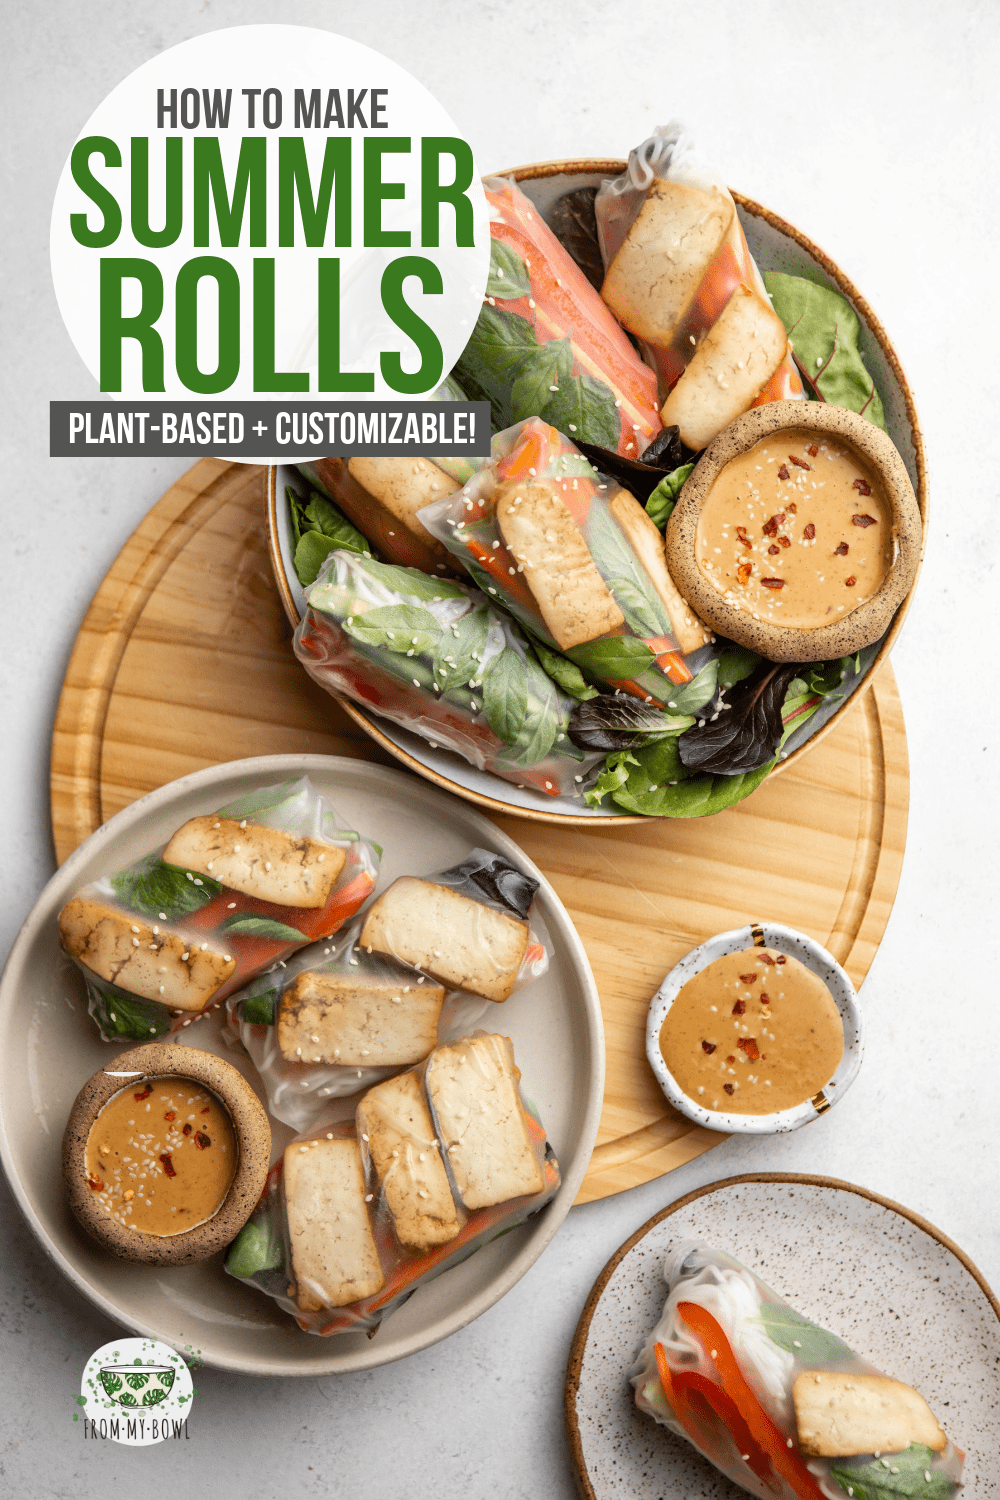 These vegan summer rolls are filled with crunchy veggies, rice noodles, fresh herbs, and seasoned tofu for a simple yet satisfying meal! #vegan #ricepaper #summerroll #springroll #glutenfree | Frommybowl.com